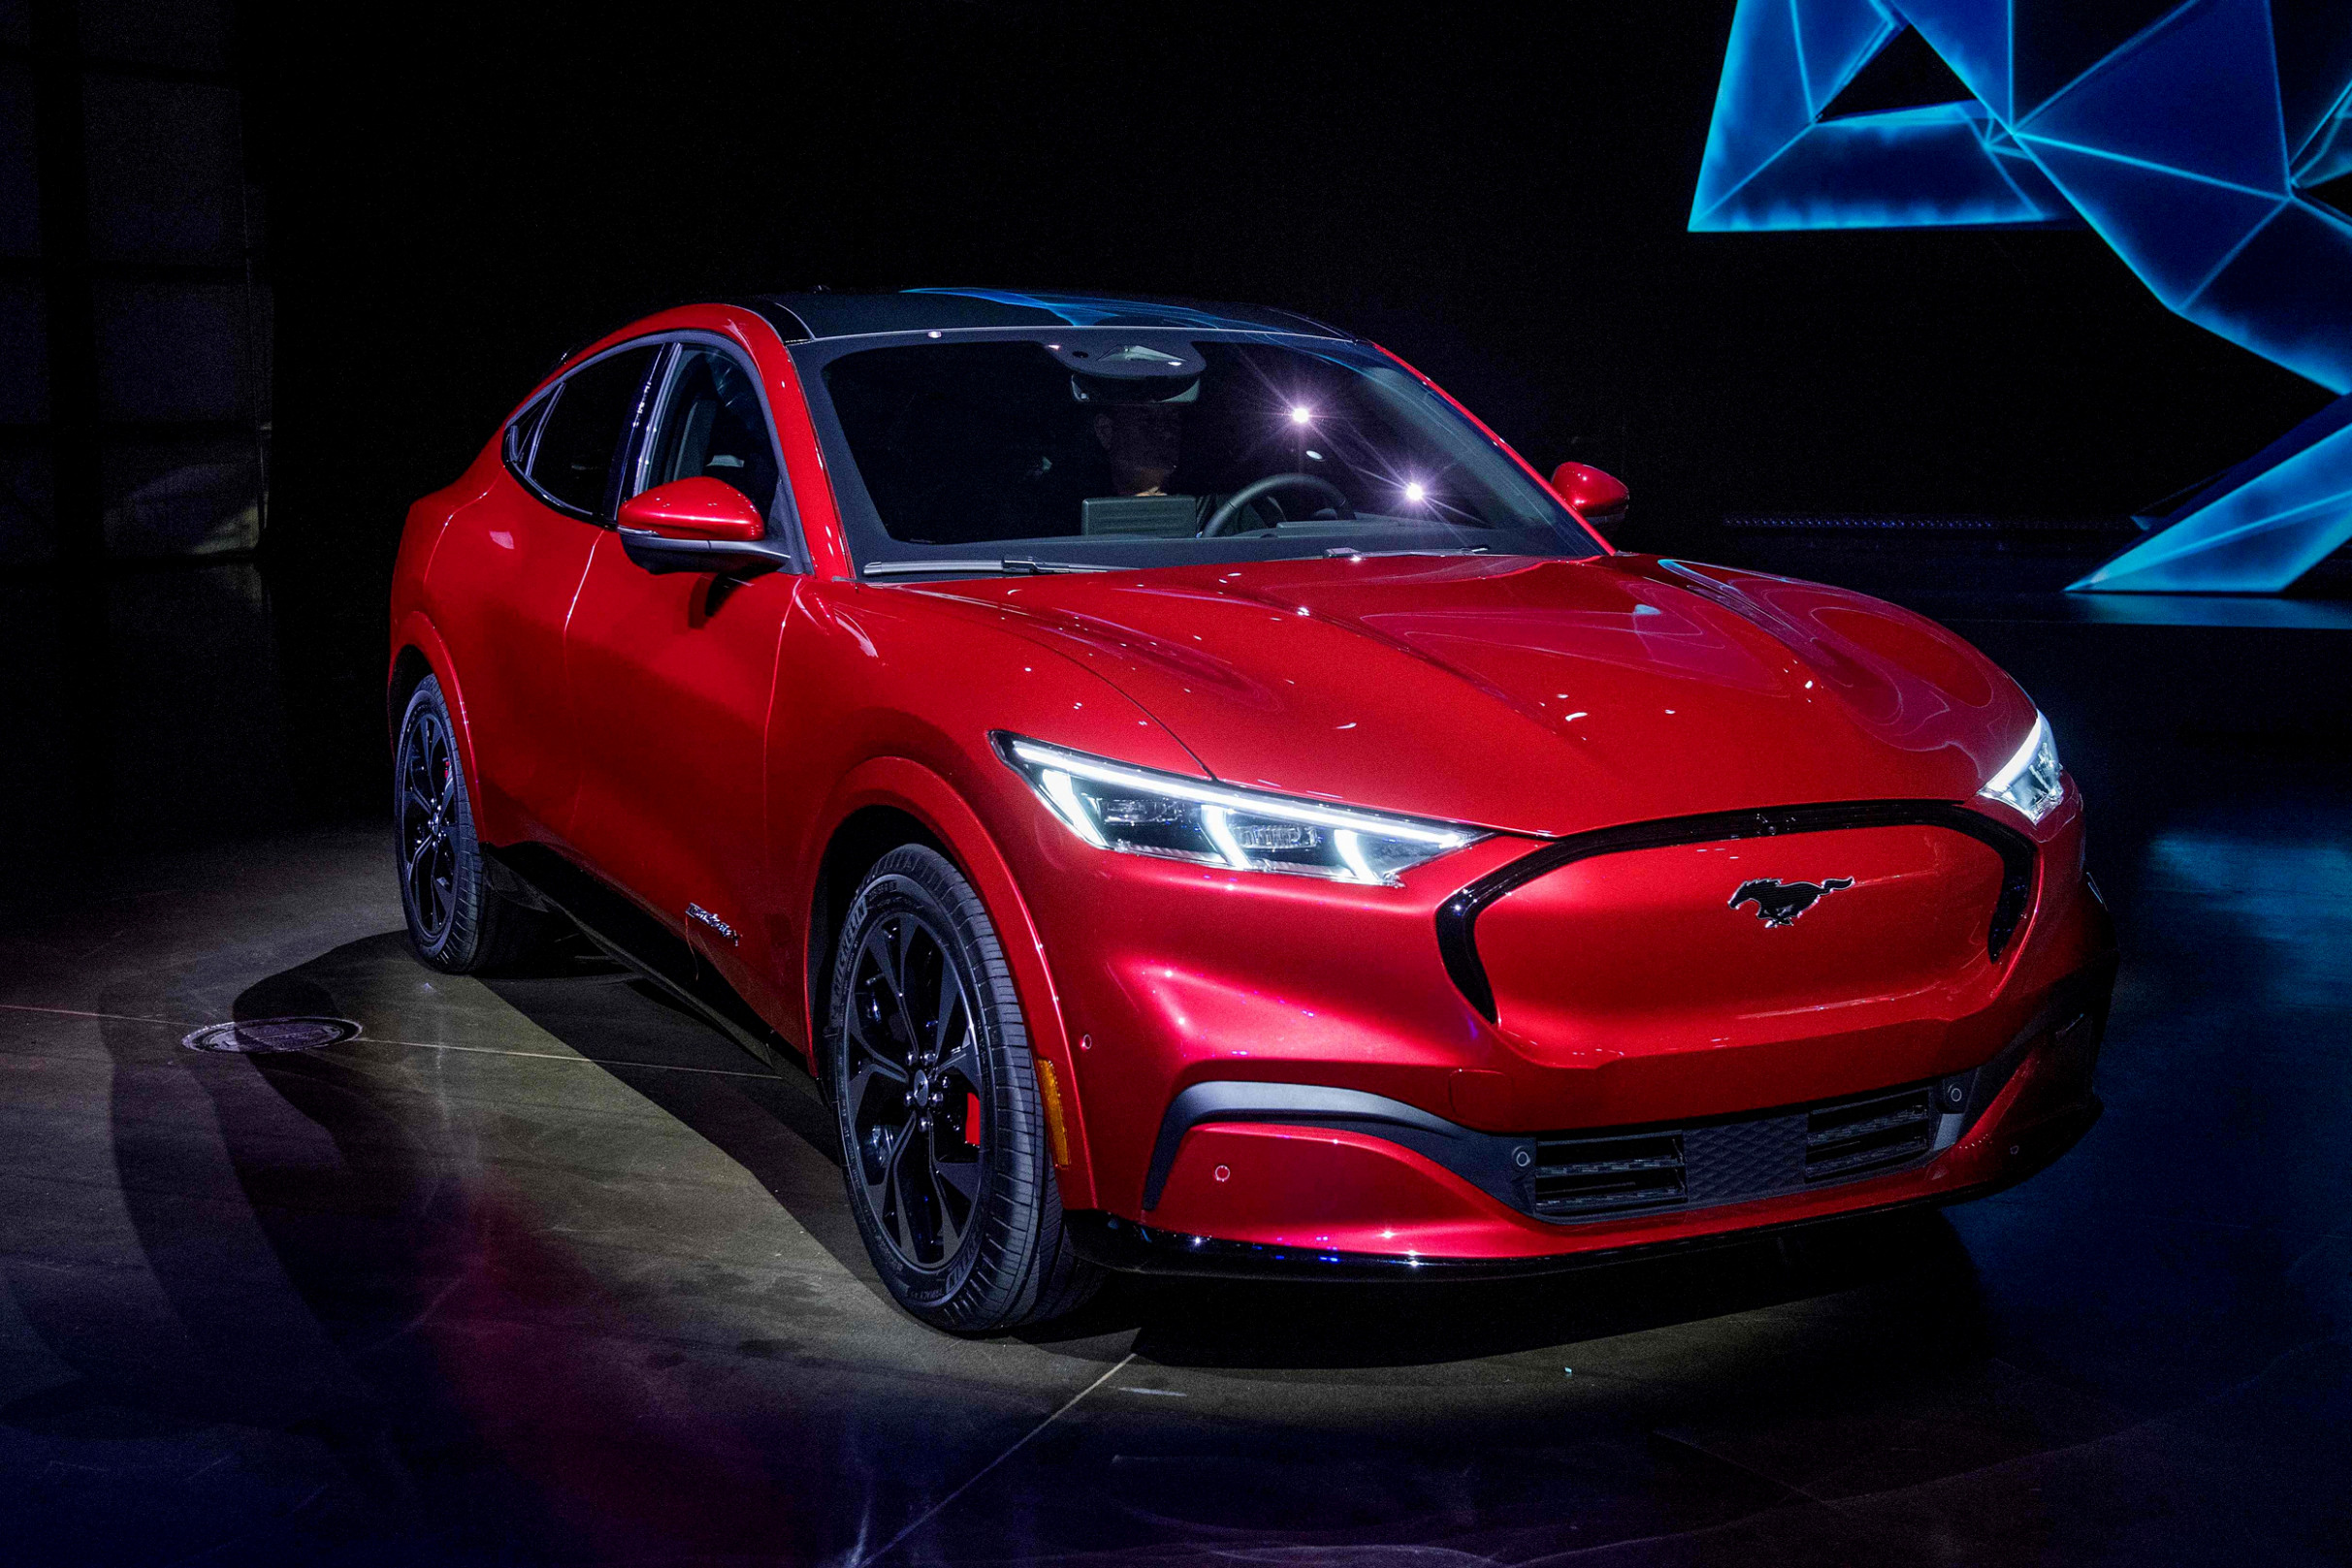 First Drive Ford Cars In 2022